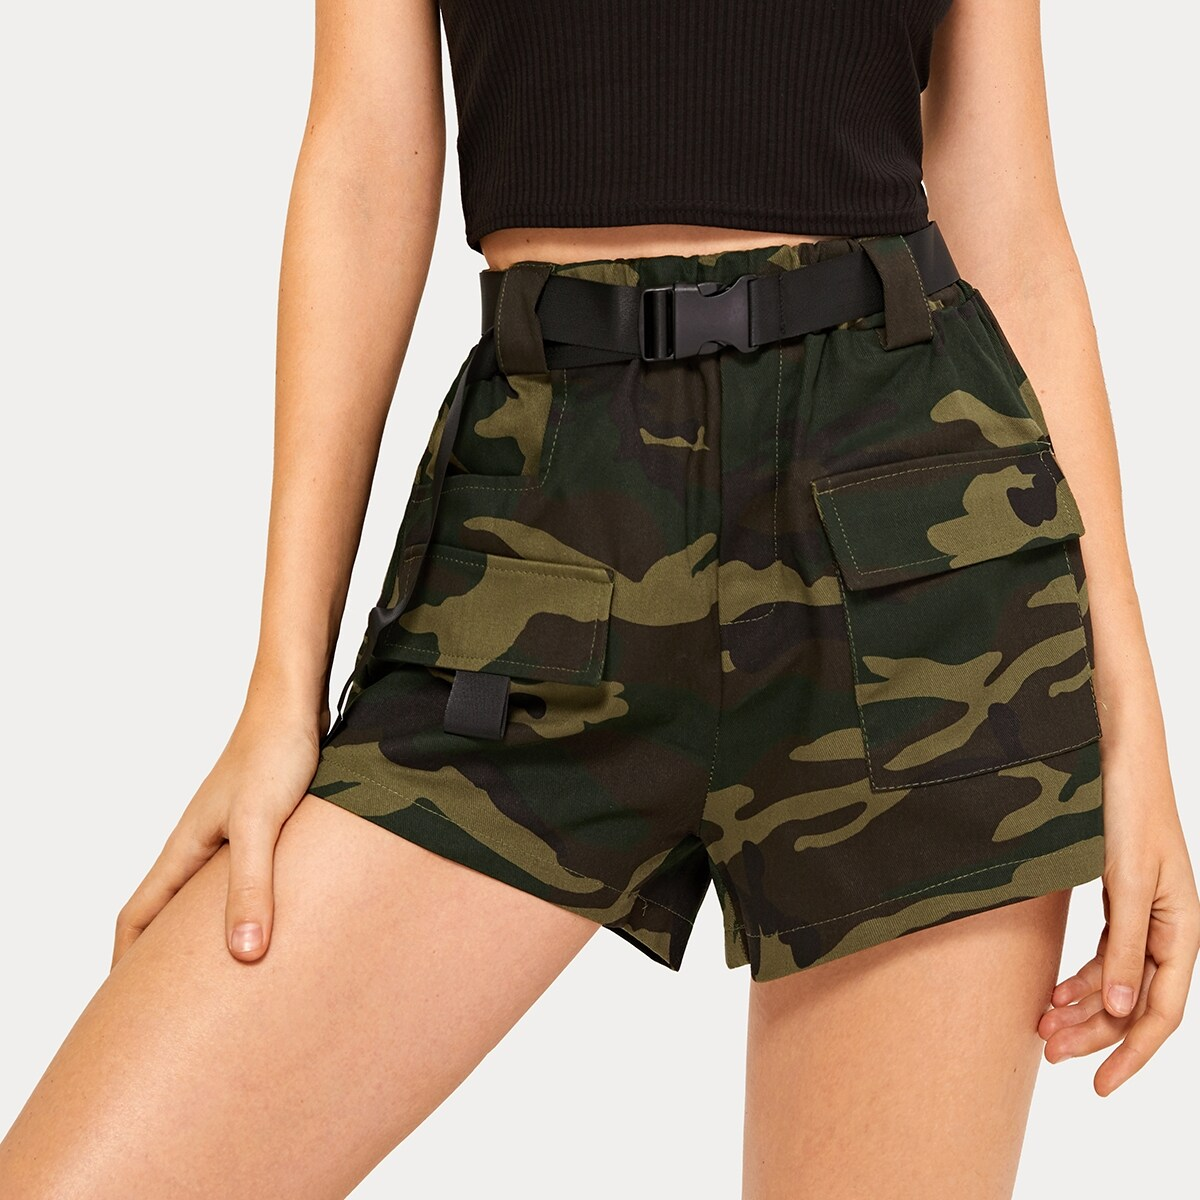 Camo Print Dual Pocket Belted Utility Shorts in Army Green by ROMWE on GOOFASH